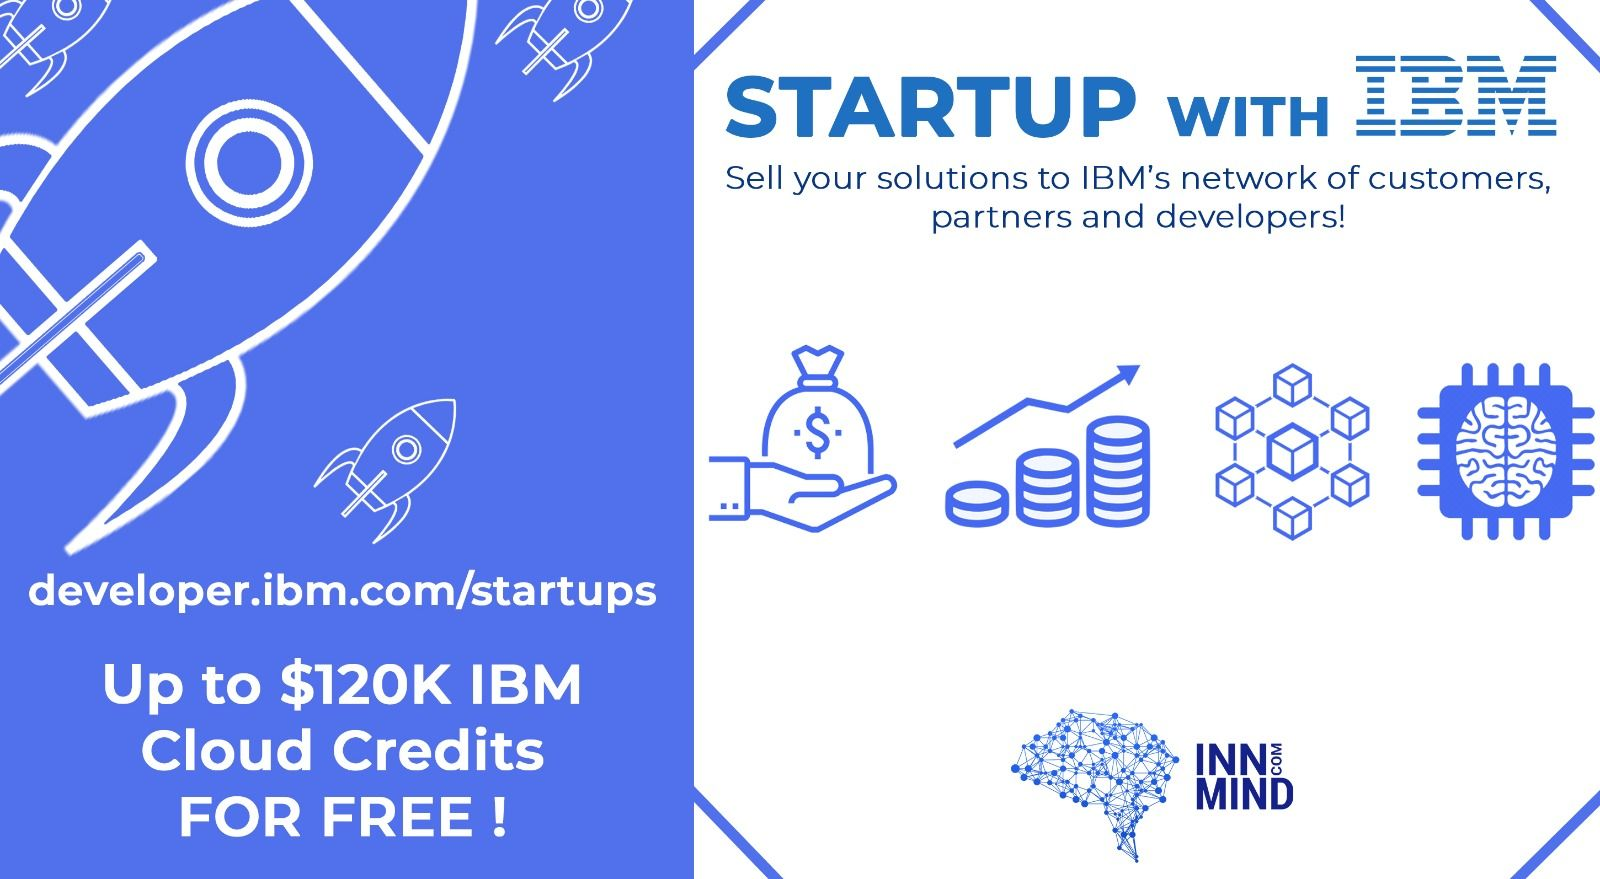 Startup with IBM: InnMind together with IBM grants Free IBM Cloud Credits for tech startups